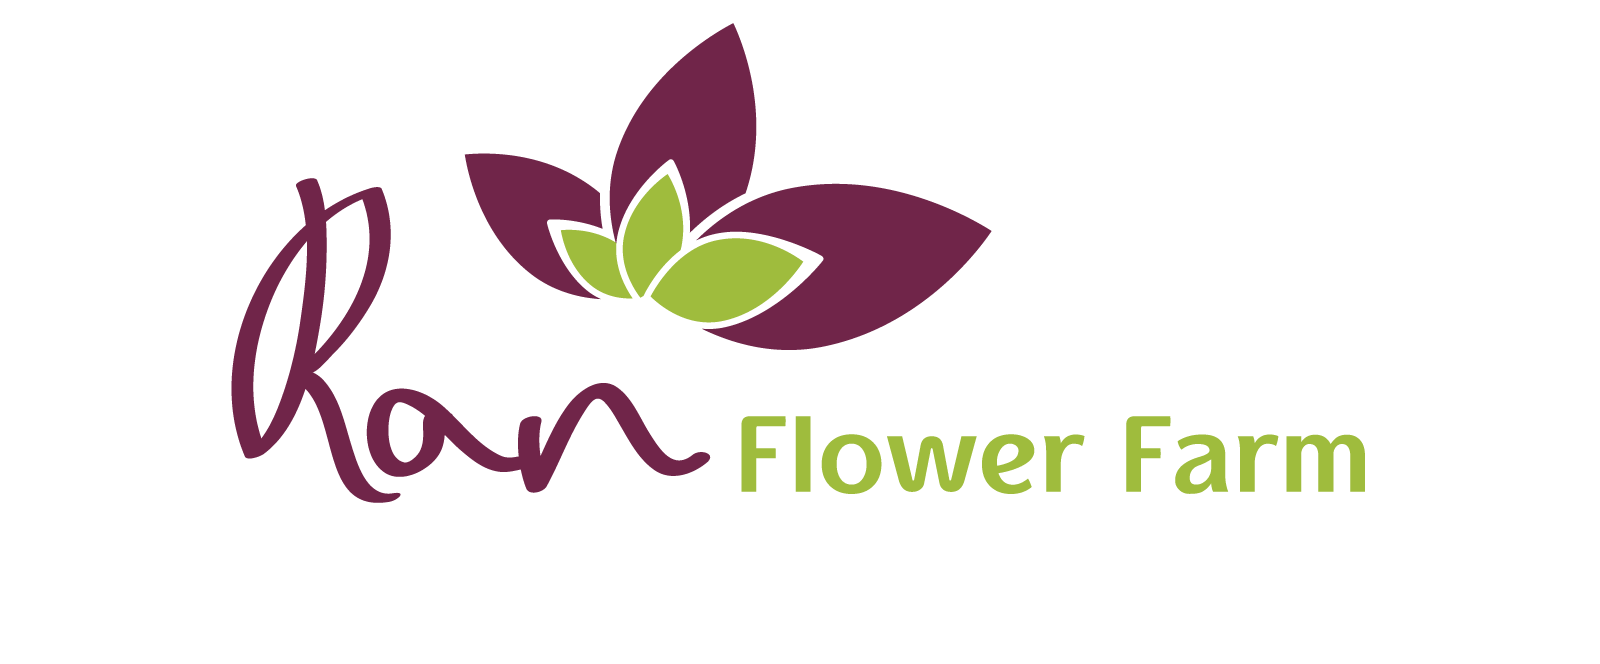 https://bigeyes.co.il/wp-content/uploads/2019/06/Ran-Flower-Farm-1-1.png